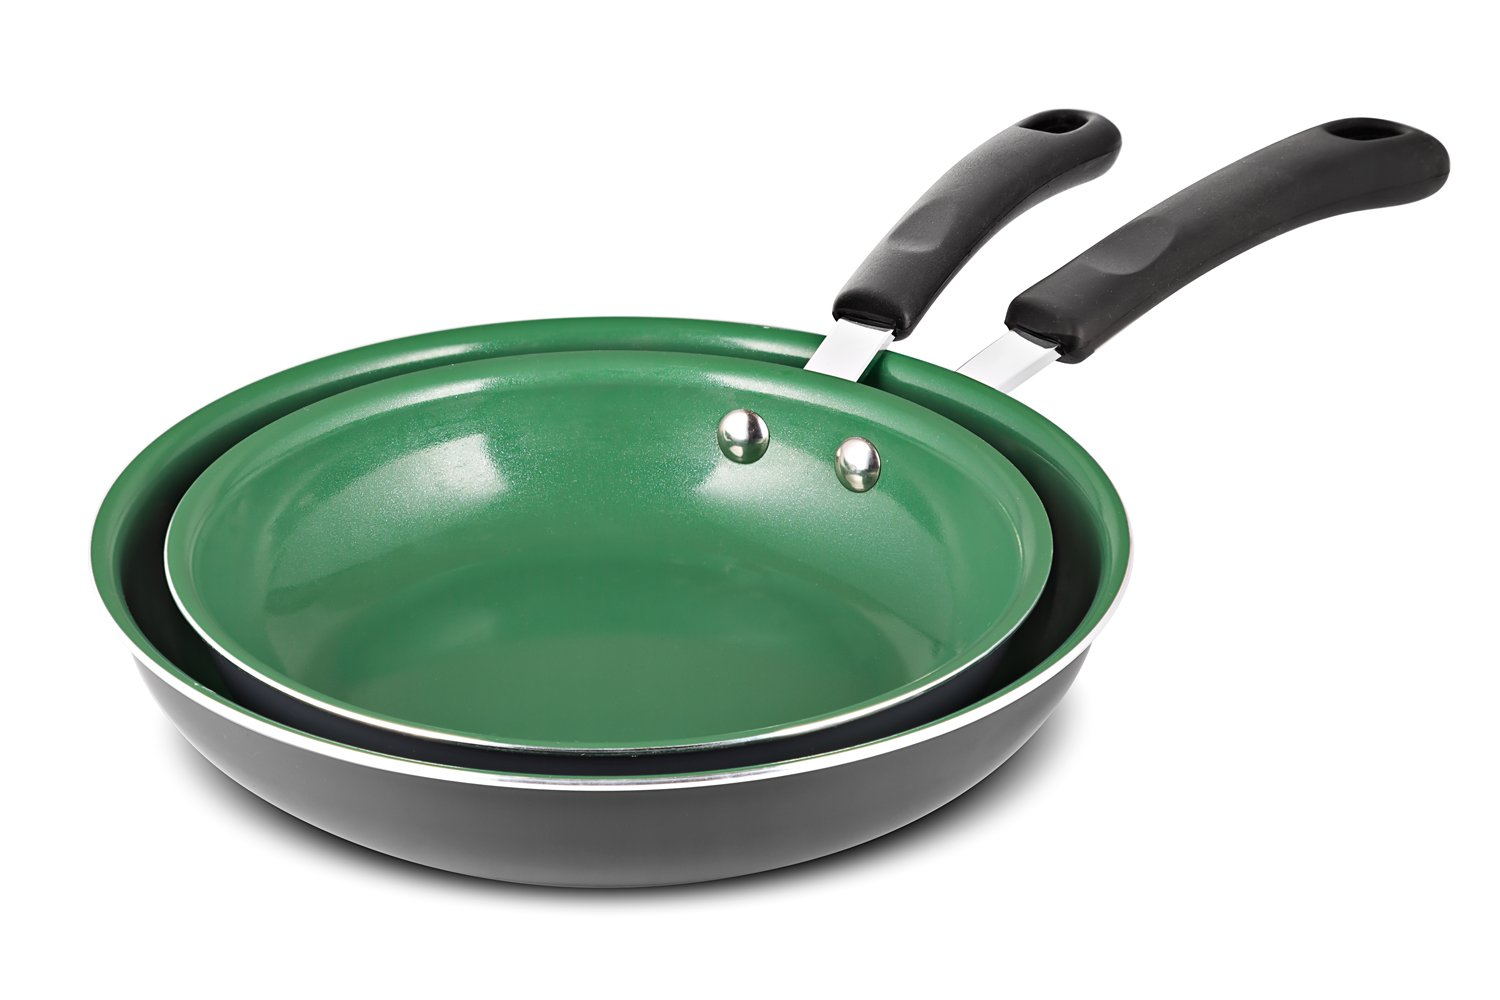 [2018 Version] Chef's Star Frying Pan Non stick Ceramic Omelette Cooking Set - Even Heat Saute Pan/Skillet Set - Supreme Frying Pans 10'' and 8'' inch Cookware Set - Green by Chef's Star